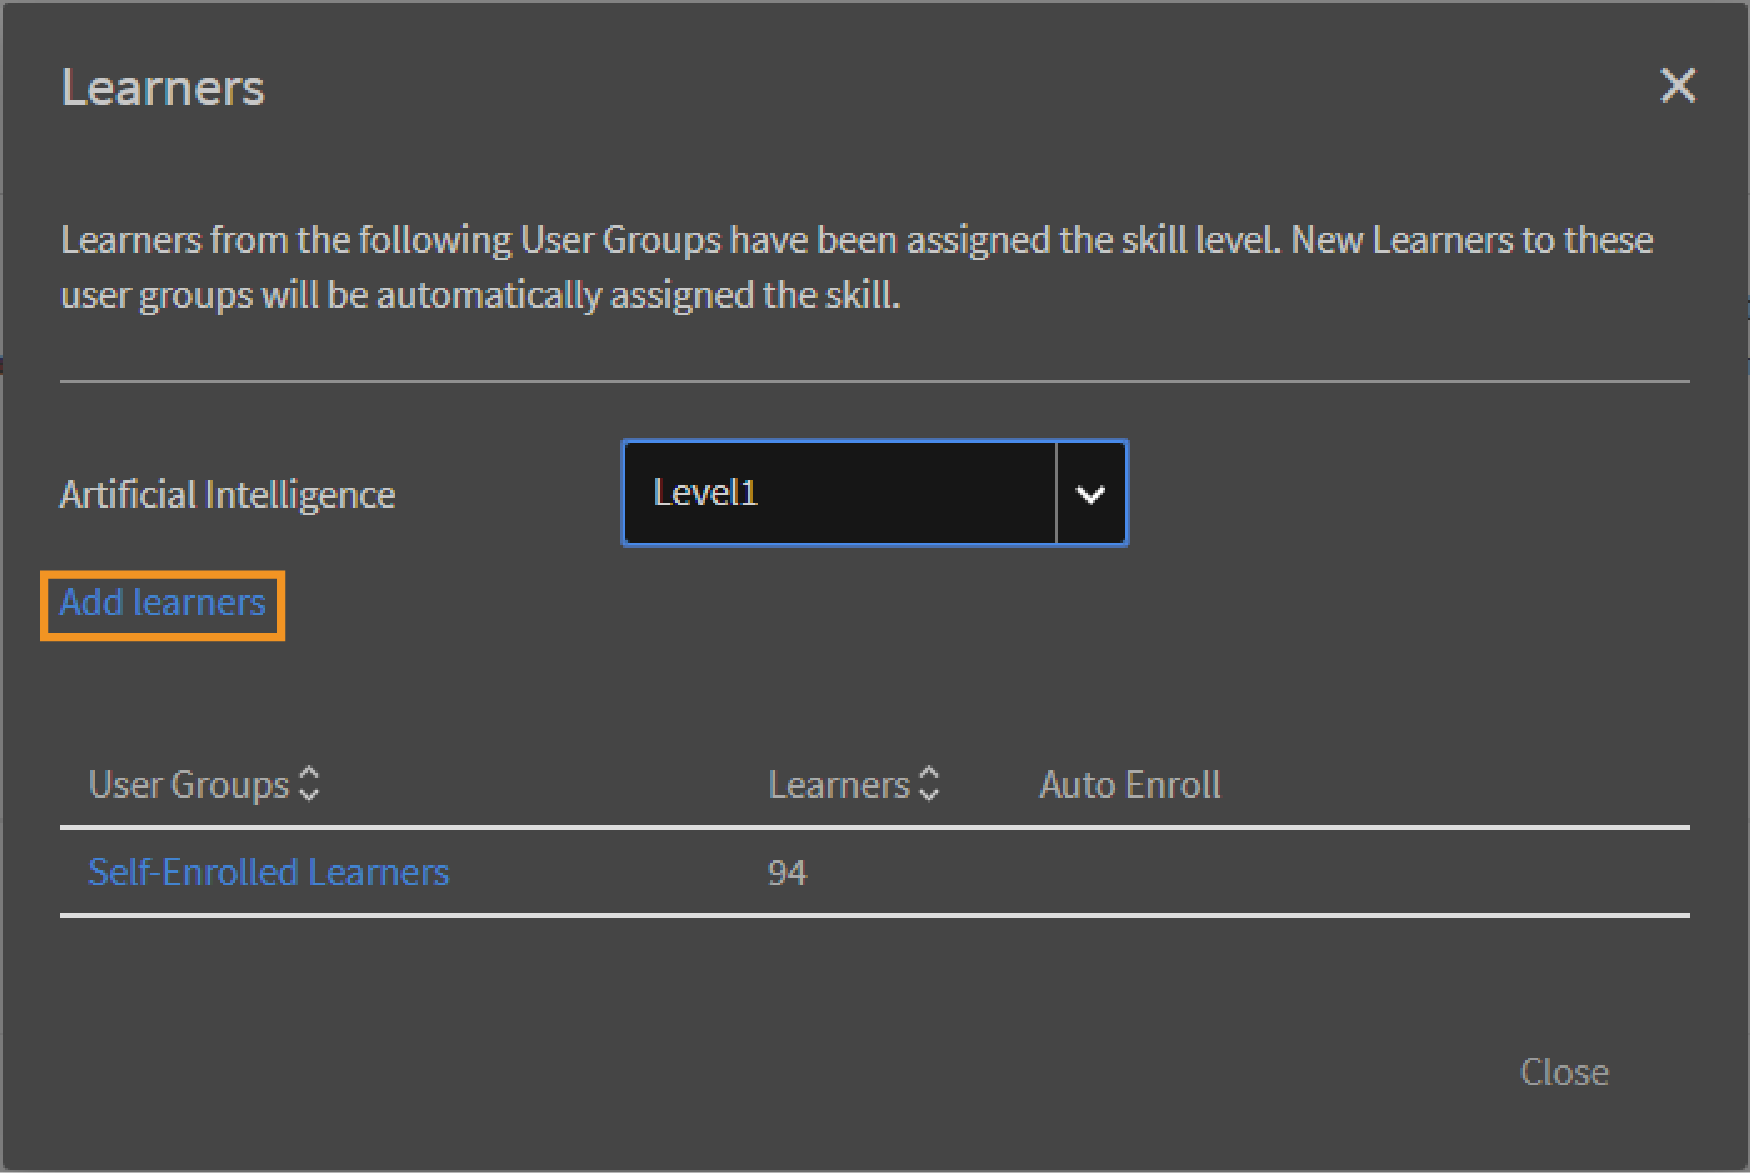 Add learners